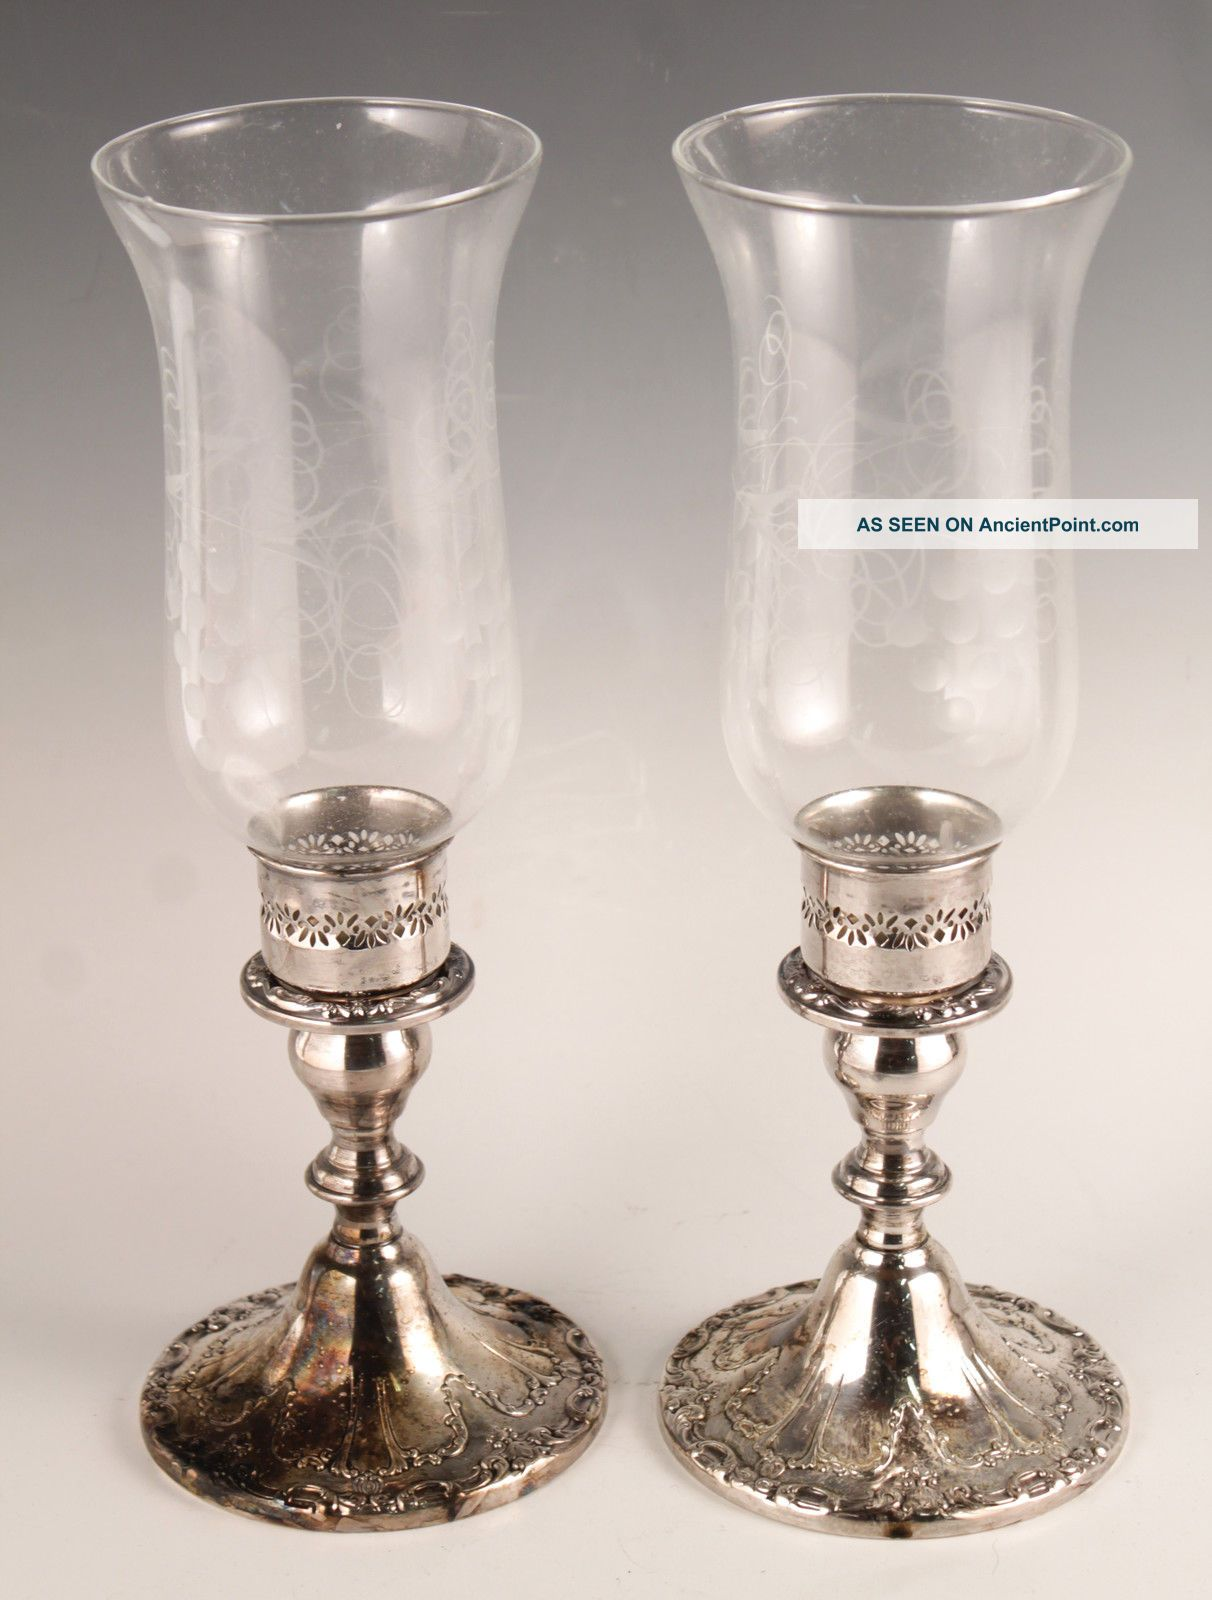 1950s - 60s Gorham Ornate Pair Silver Sp Etched Art Glass Hurricane Candle Holders Candlesticks & Candelabra photo